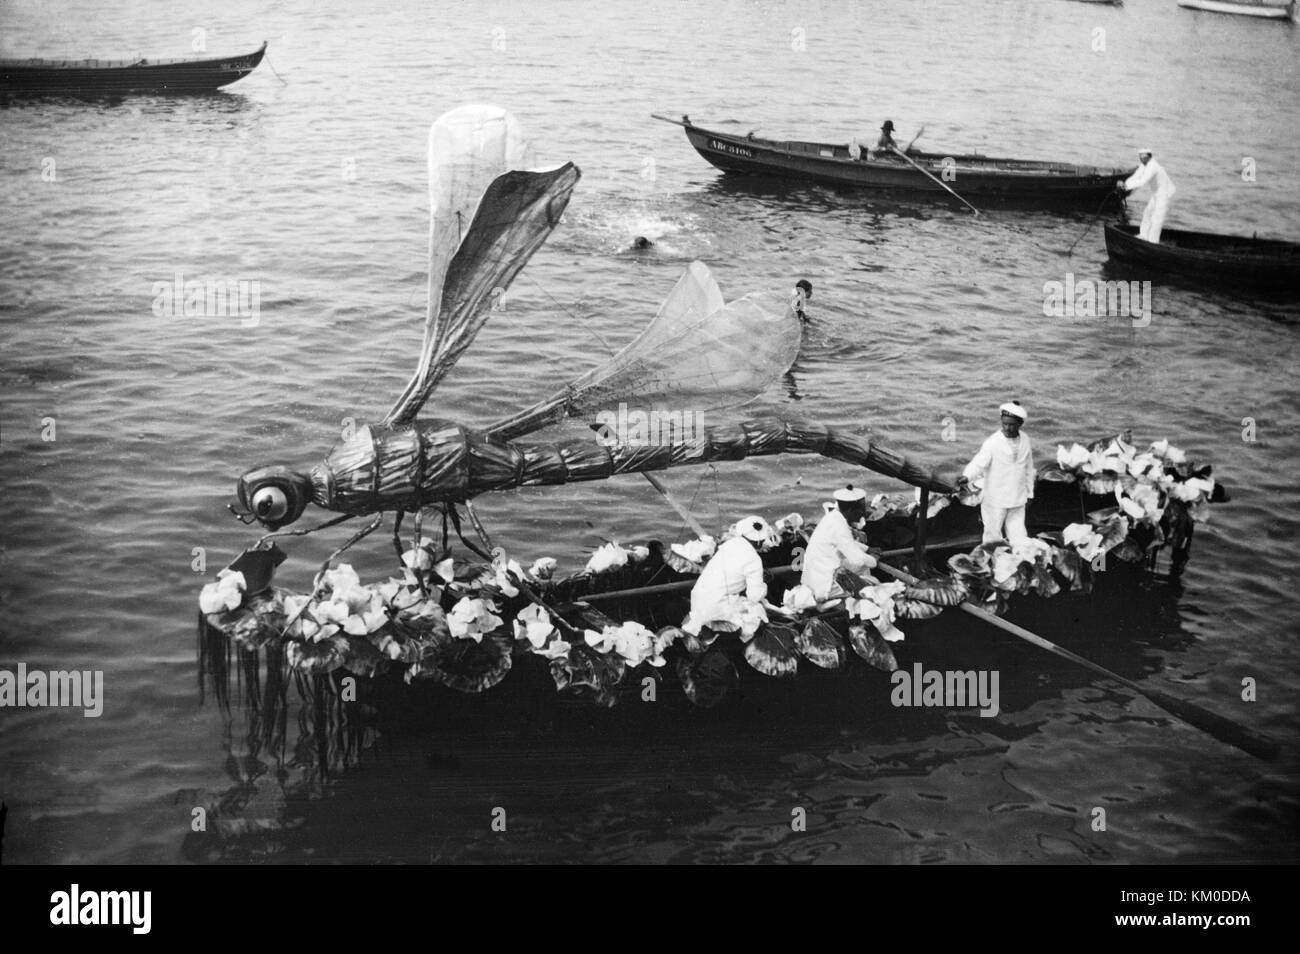 Black and white image taken around the late 19th or early 20th century, showing growing boat in a festival, with - Stock Image